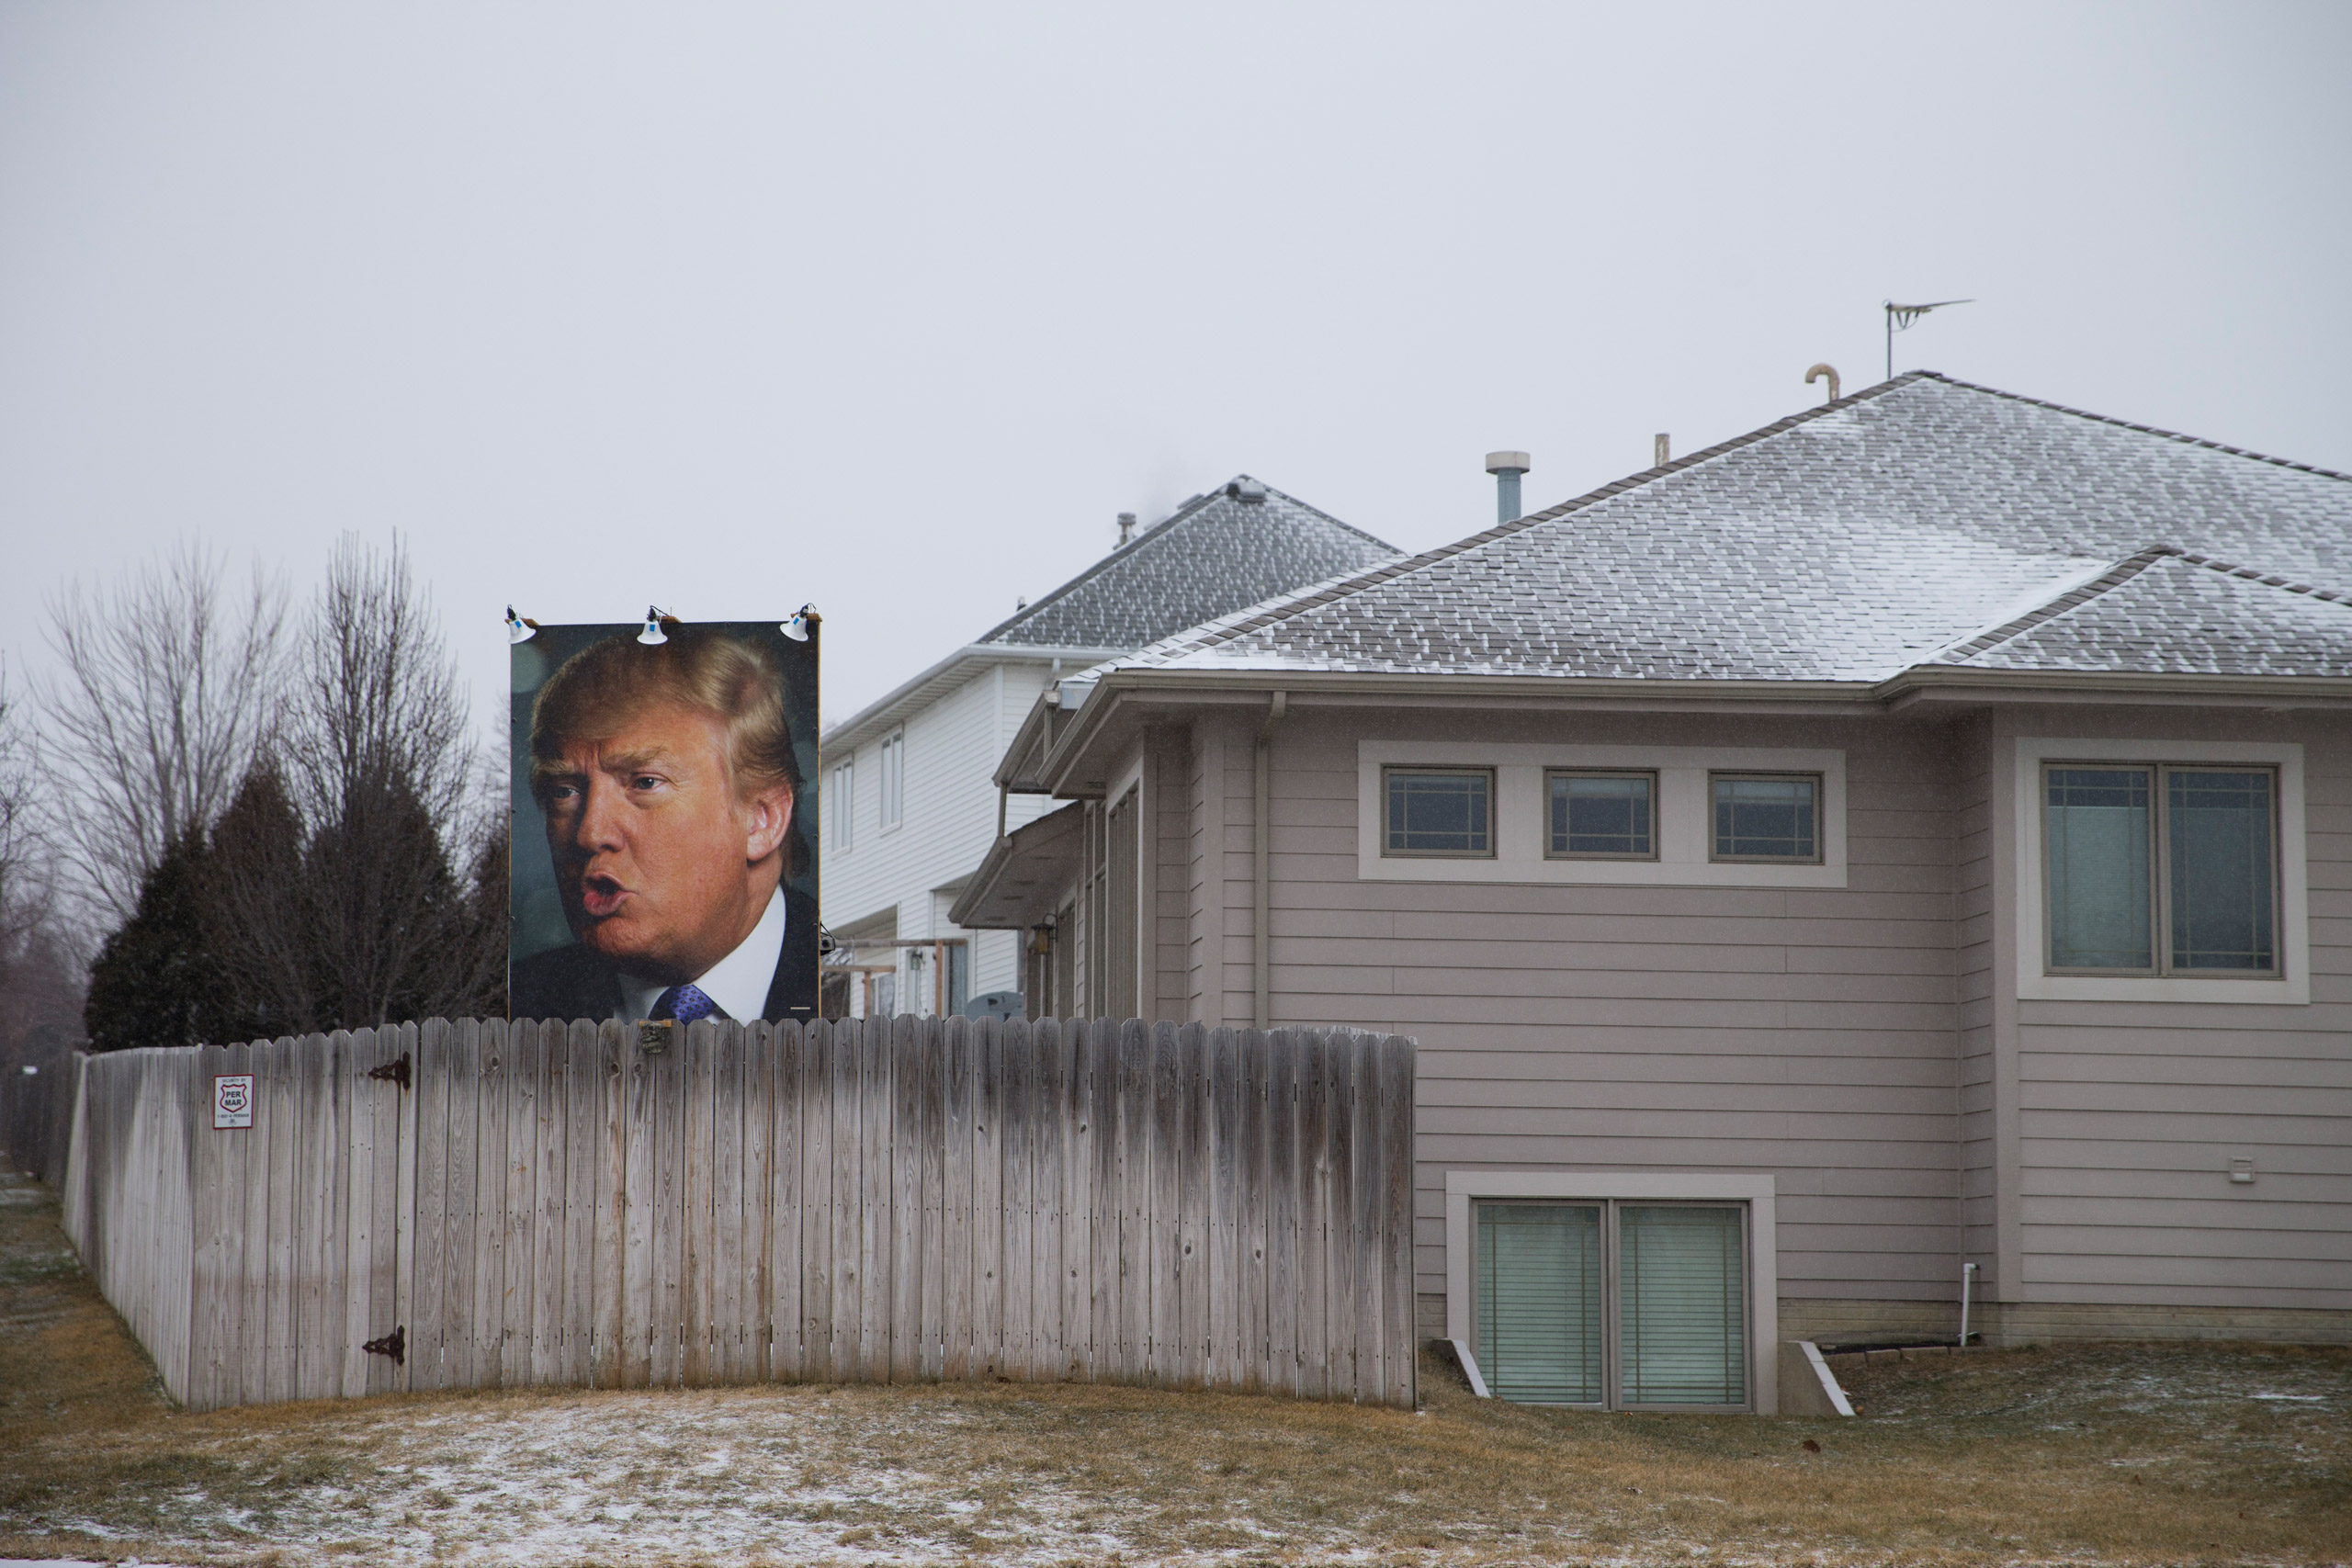 A photo of Republican presidential candidate Donald Trump hangs outside a home in West Des Moines, Iowa, on Jan. 19, 2016.